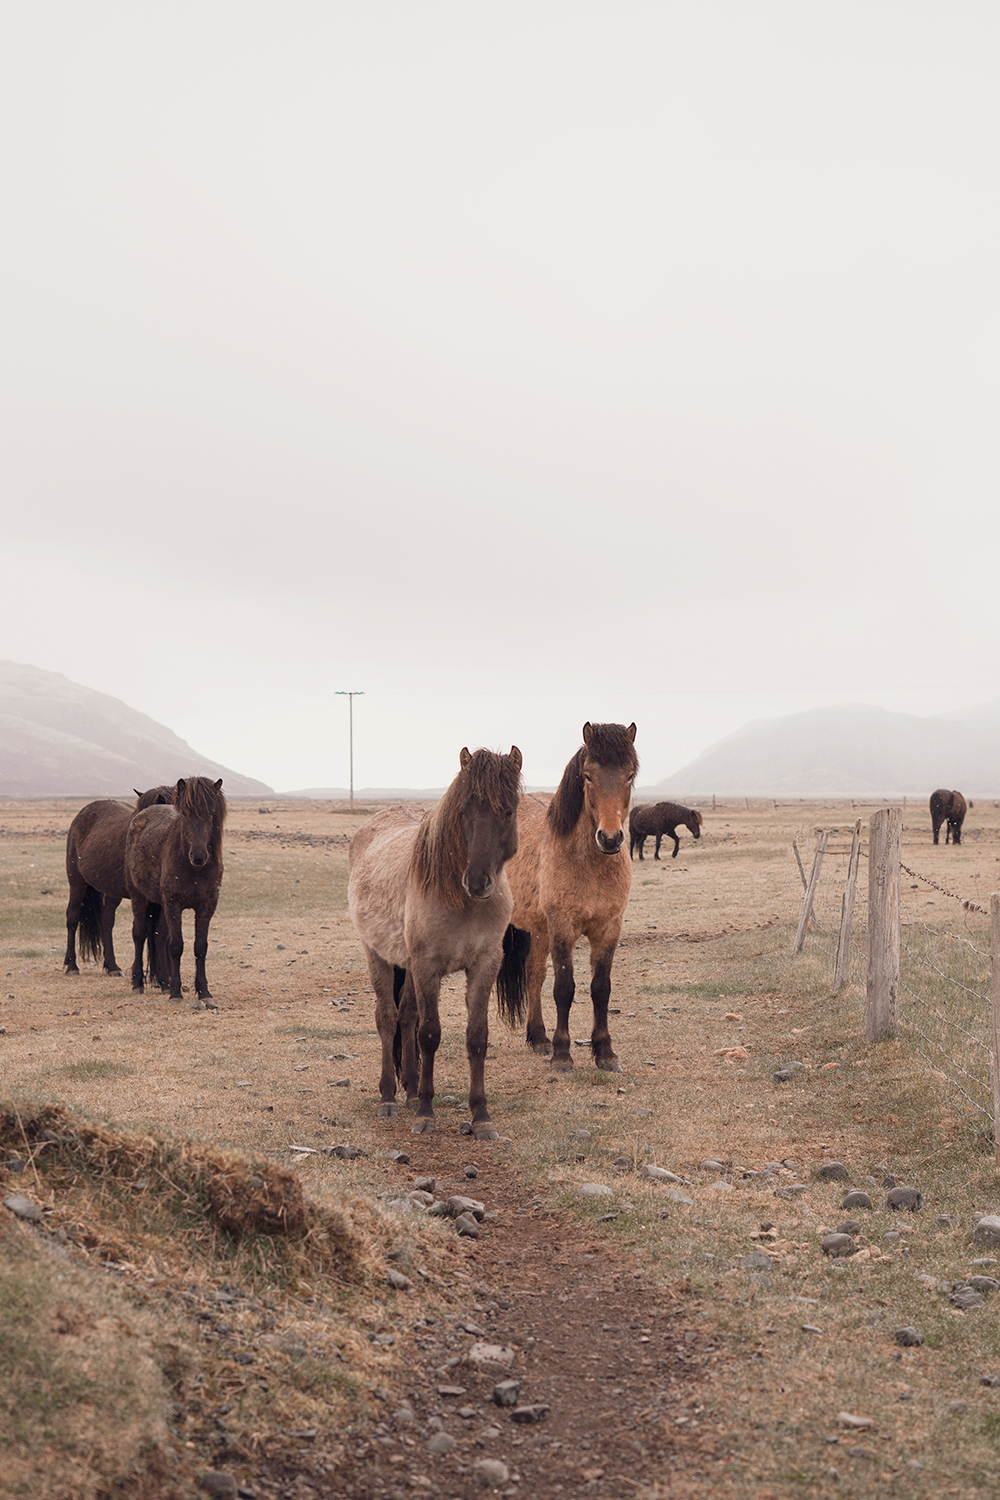 03iceland-hoffell-icelandichorses-horses-farm-travel